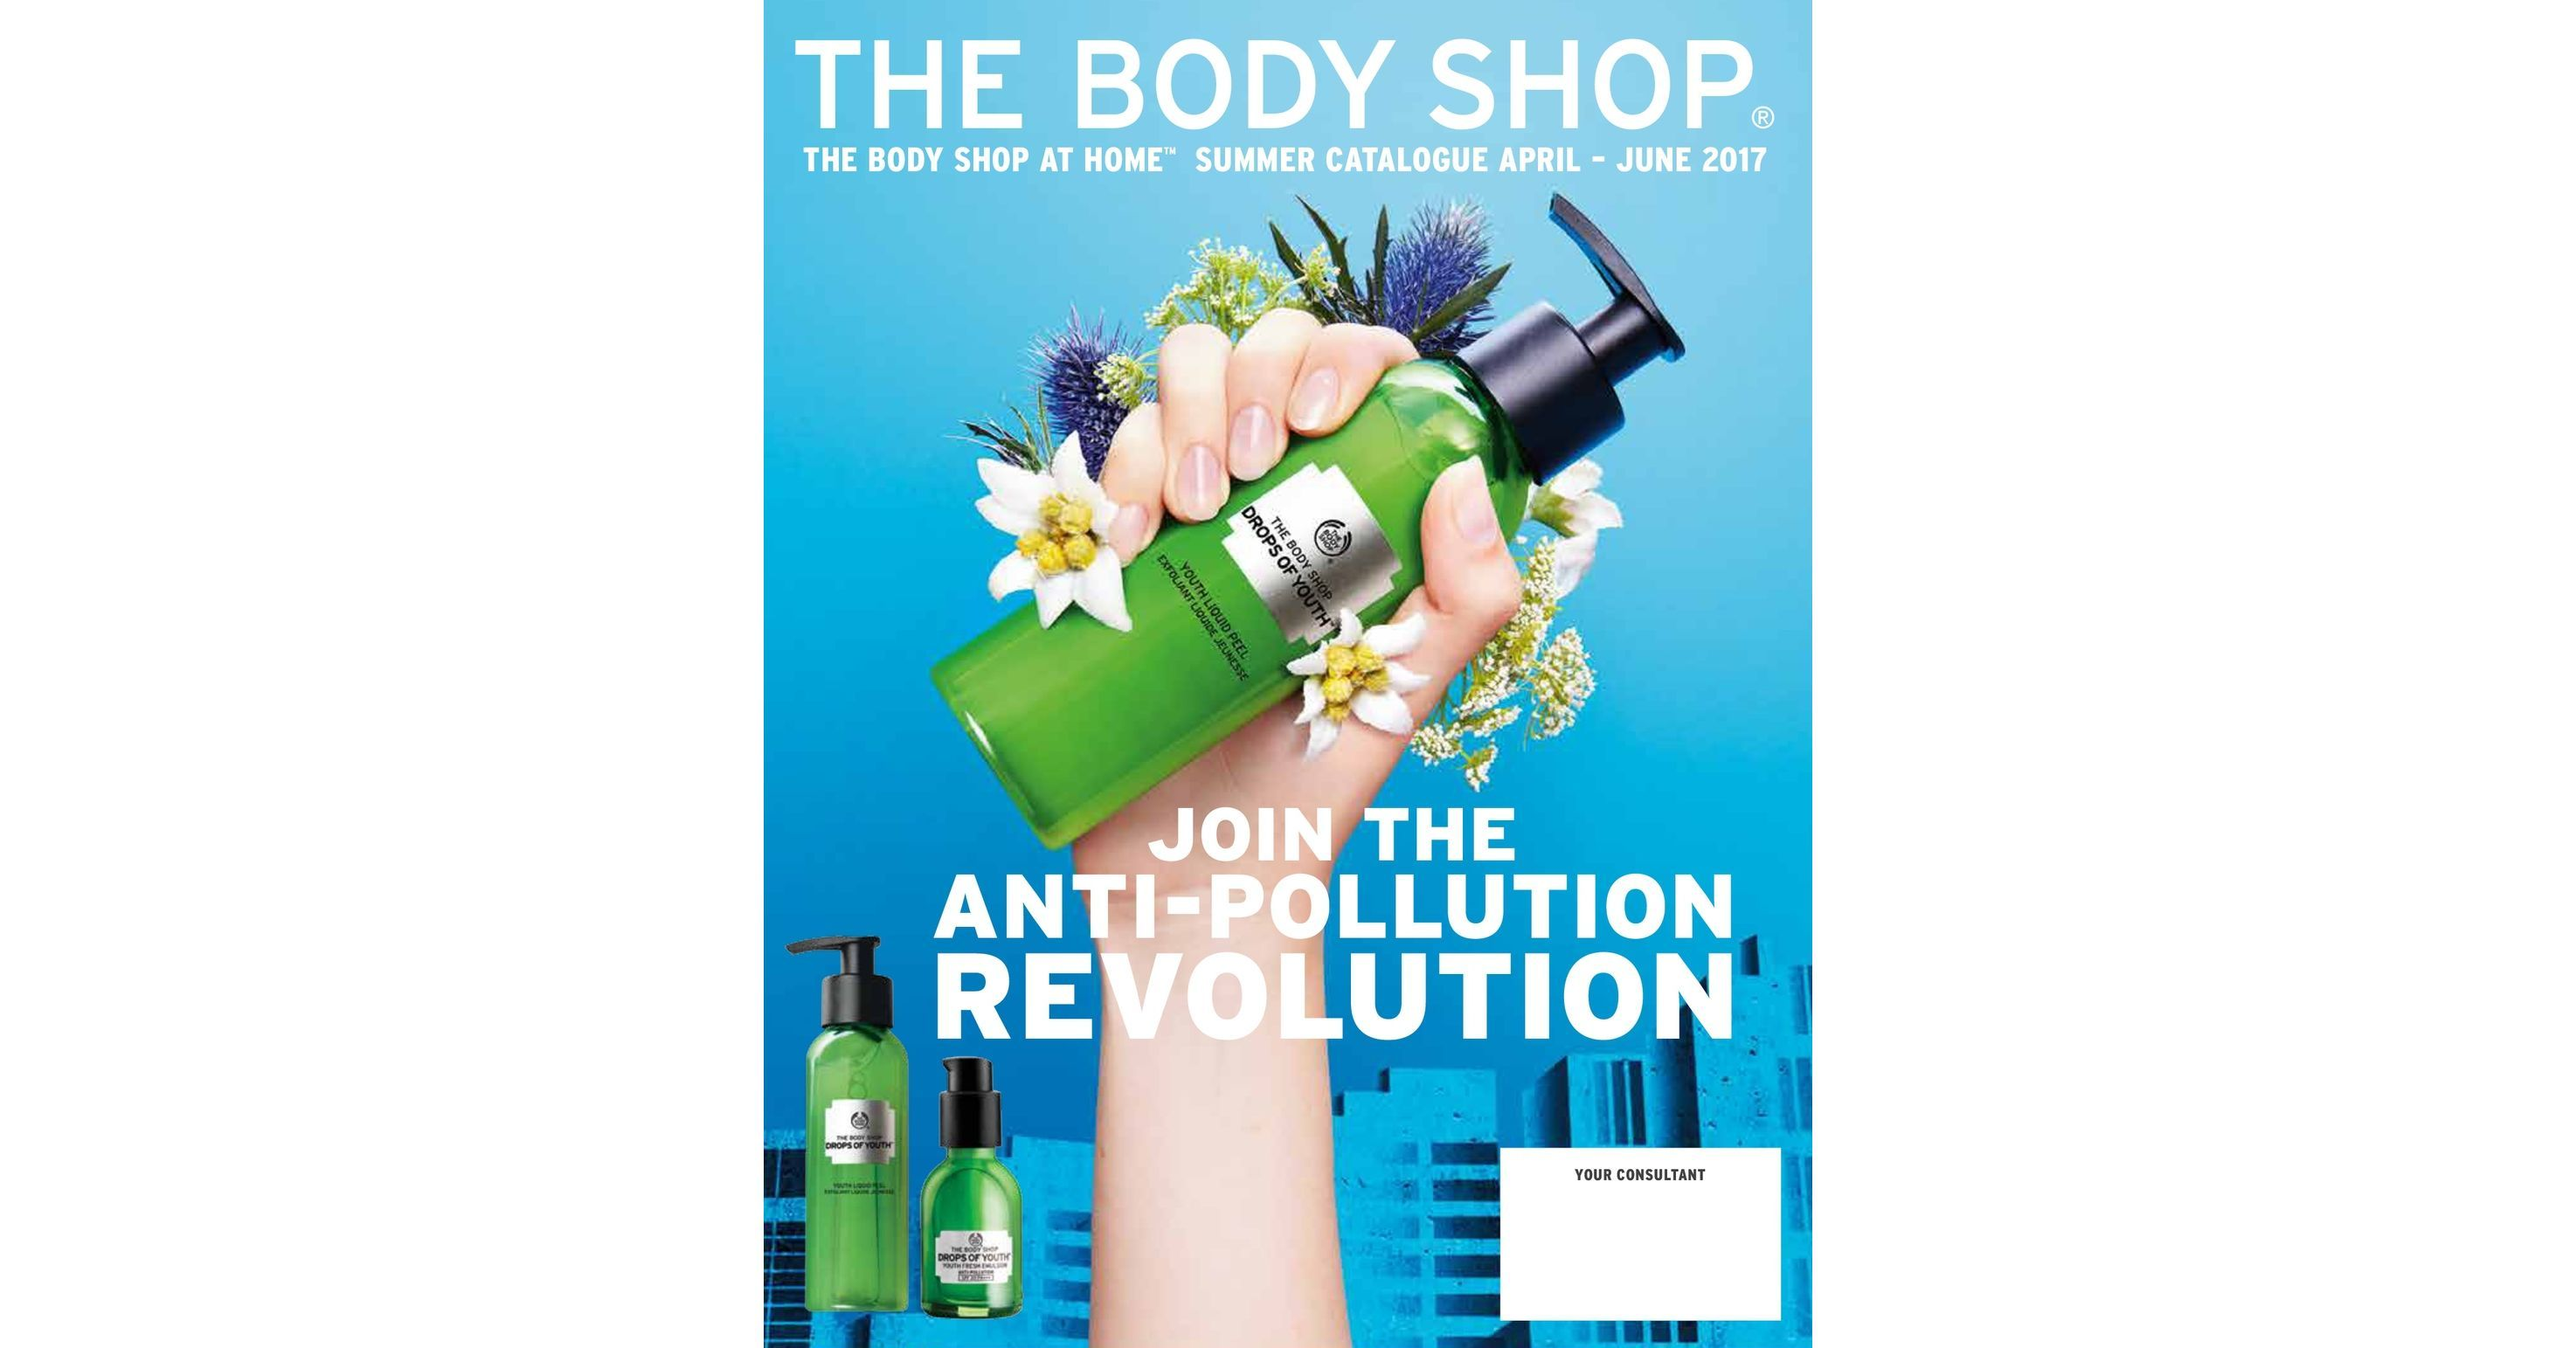 THE BODY SHOP AT HOME 2017 SUMMER CATALOGUE  https://www.facebook.com/groups/1272633339457788/